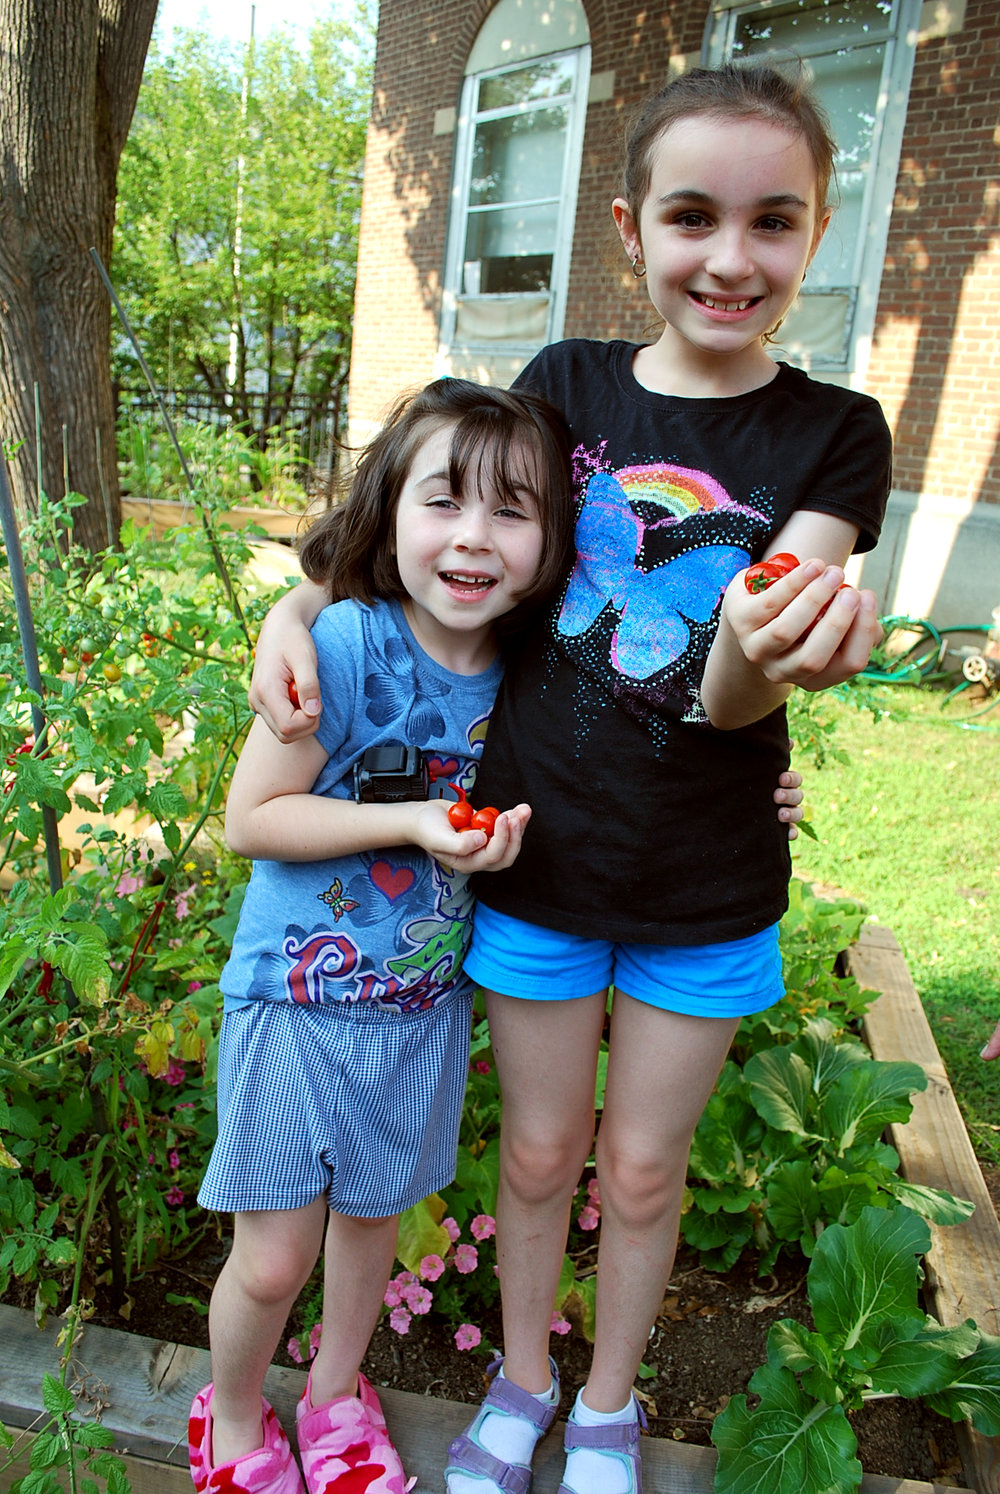 2012 July Leia and Elle in garden with veggies 006.jpg